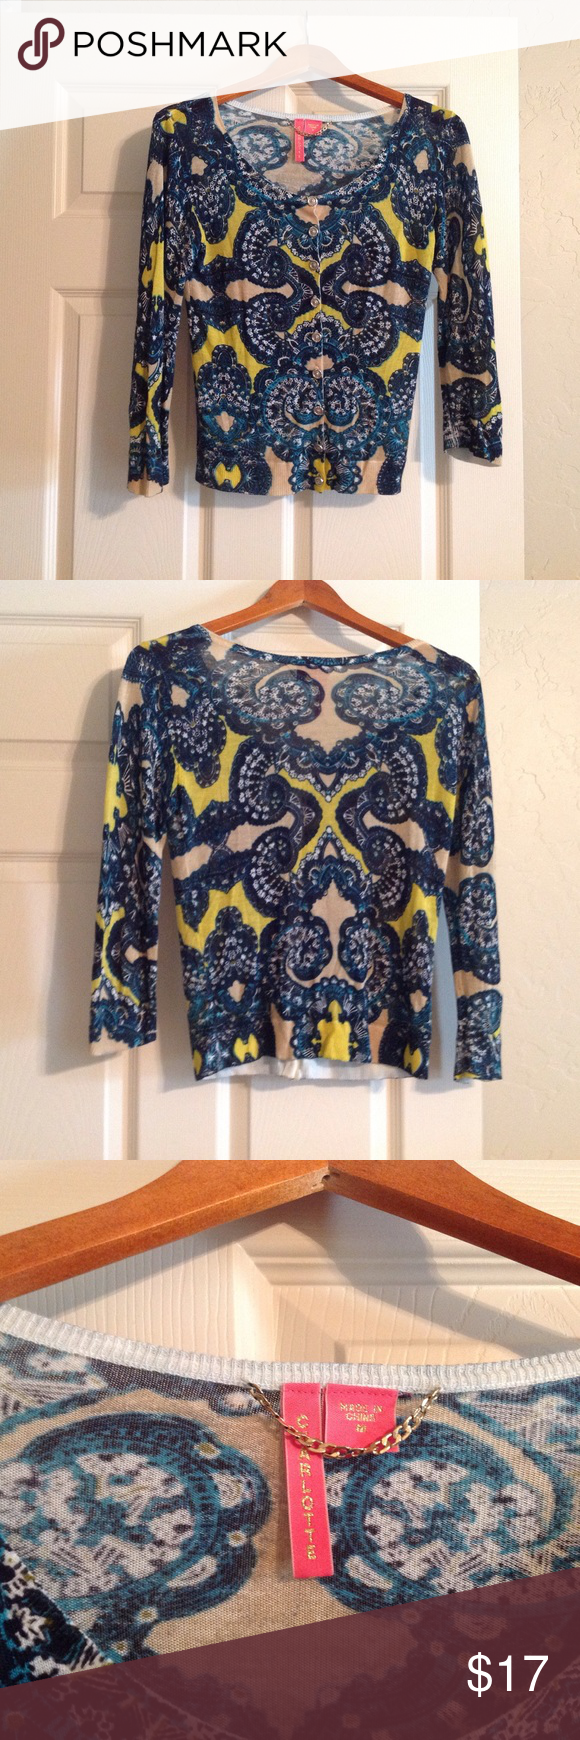 Charlotte blouse size M Great color combination lightweight knit. Charlote Sweaters Crew & Scoop Necks